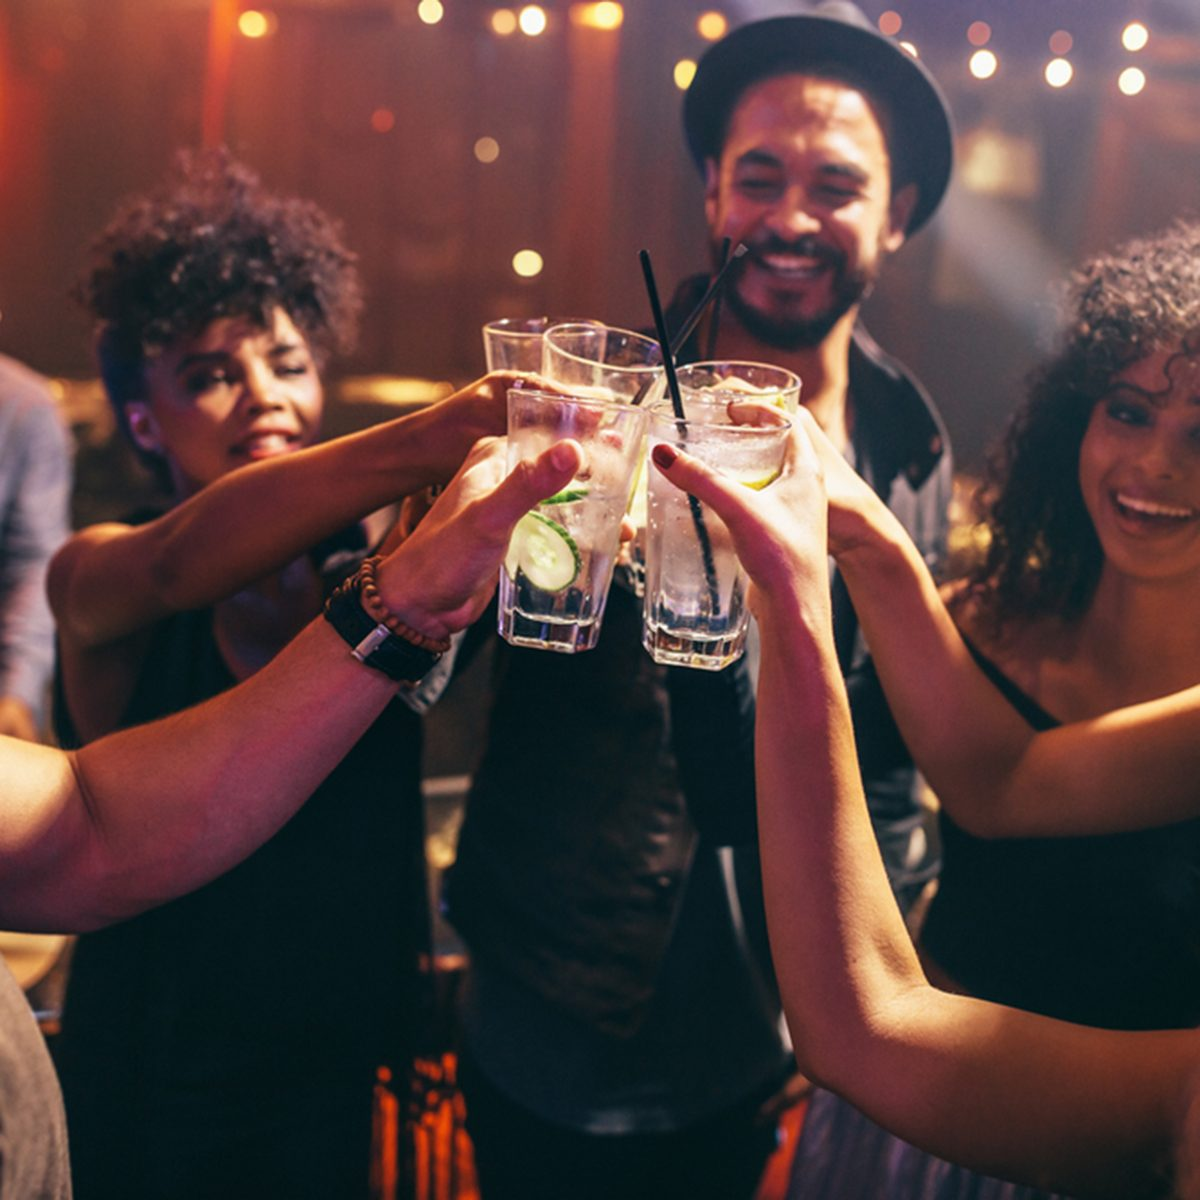 Group of friends having drinks at the night club party. Young people enjoying at a bar toasting cocktails.; Shutterstock ID 580144114